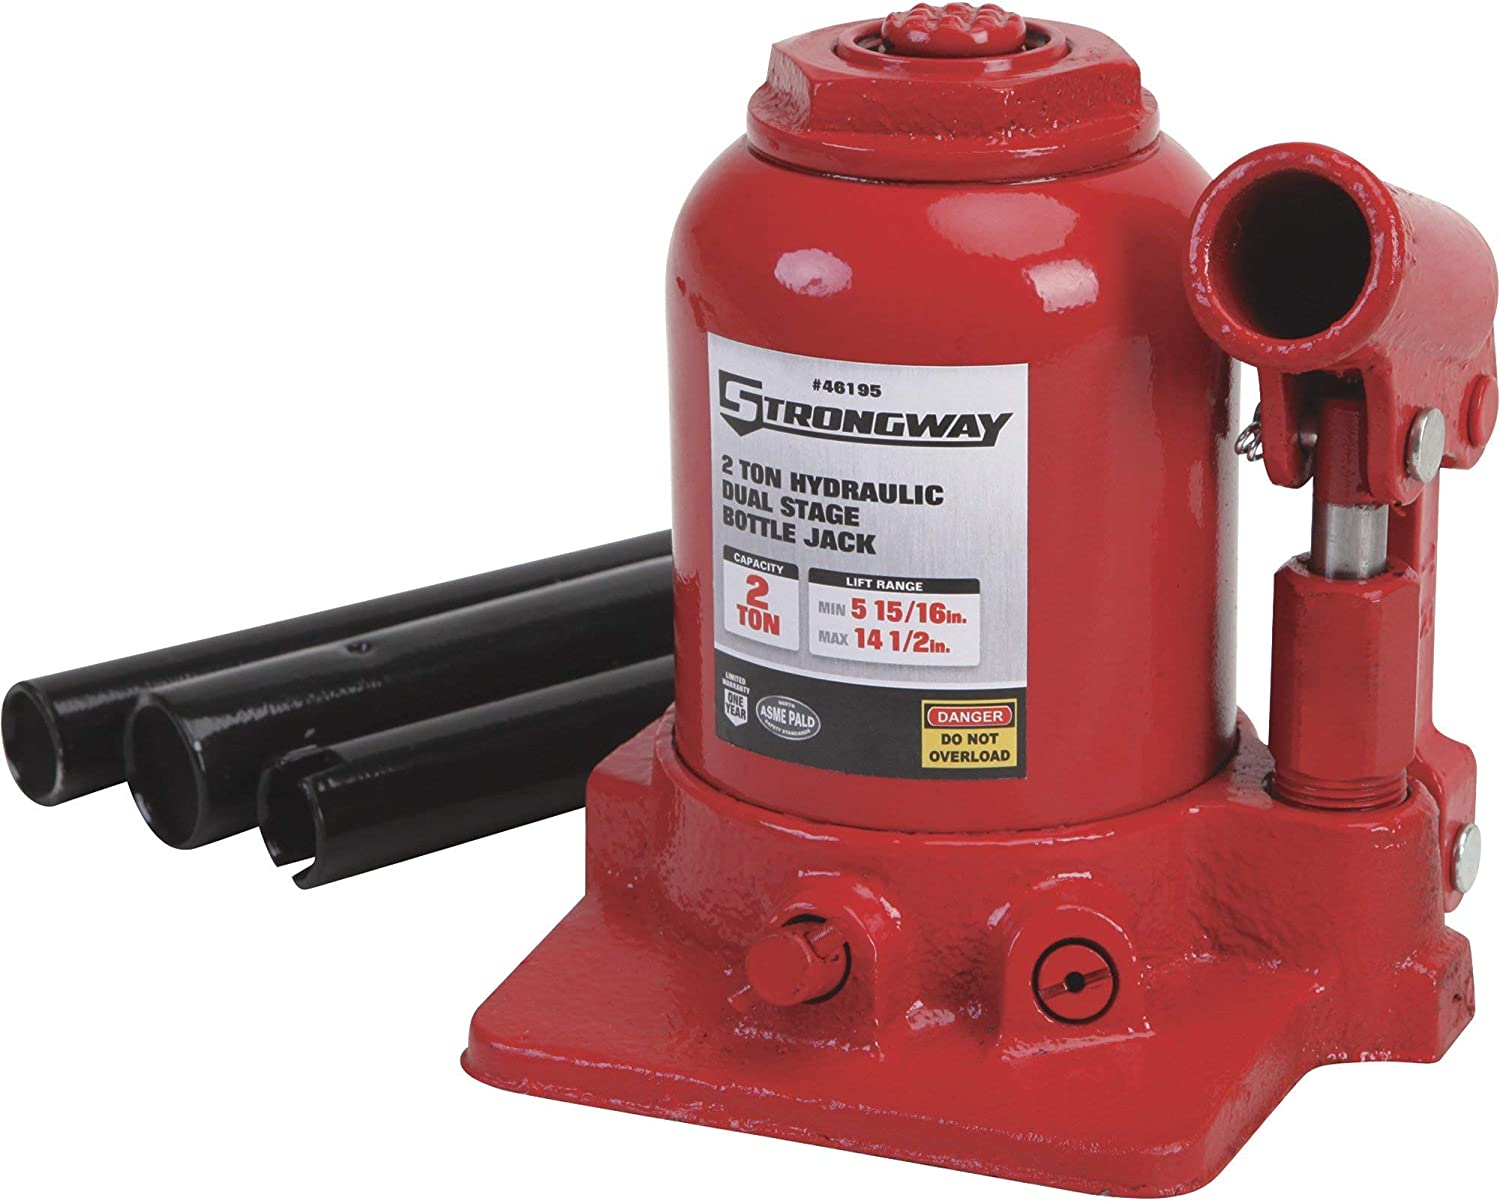 Strongway Hydraulic High Lift Double Ram Bottle - Best jack for lifted trucks